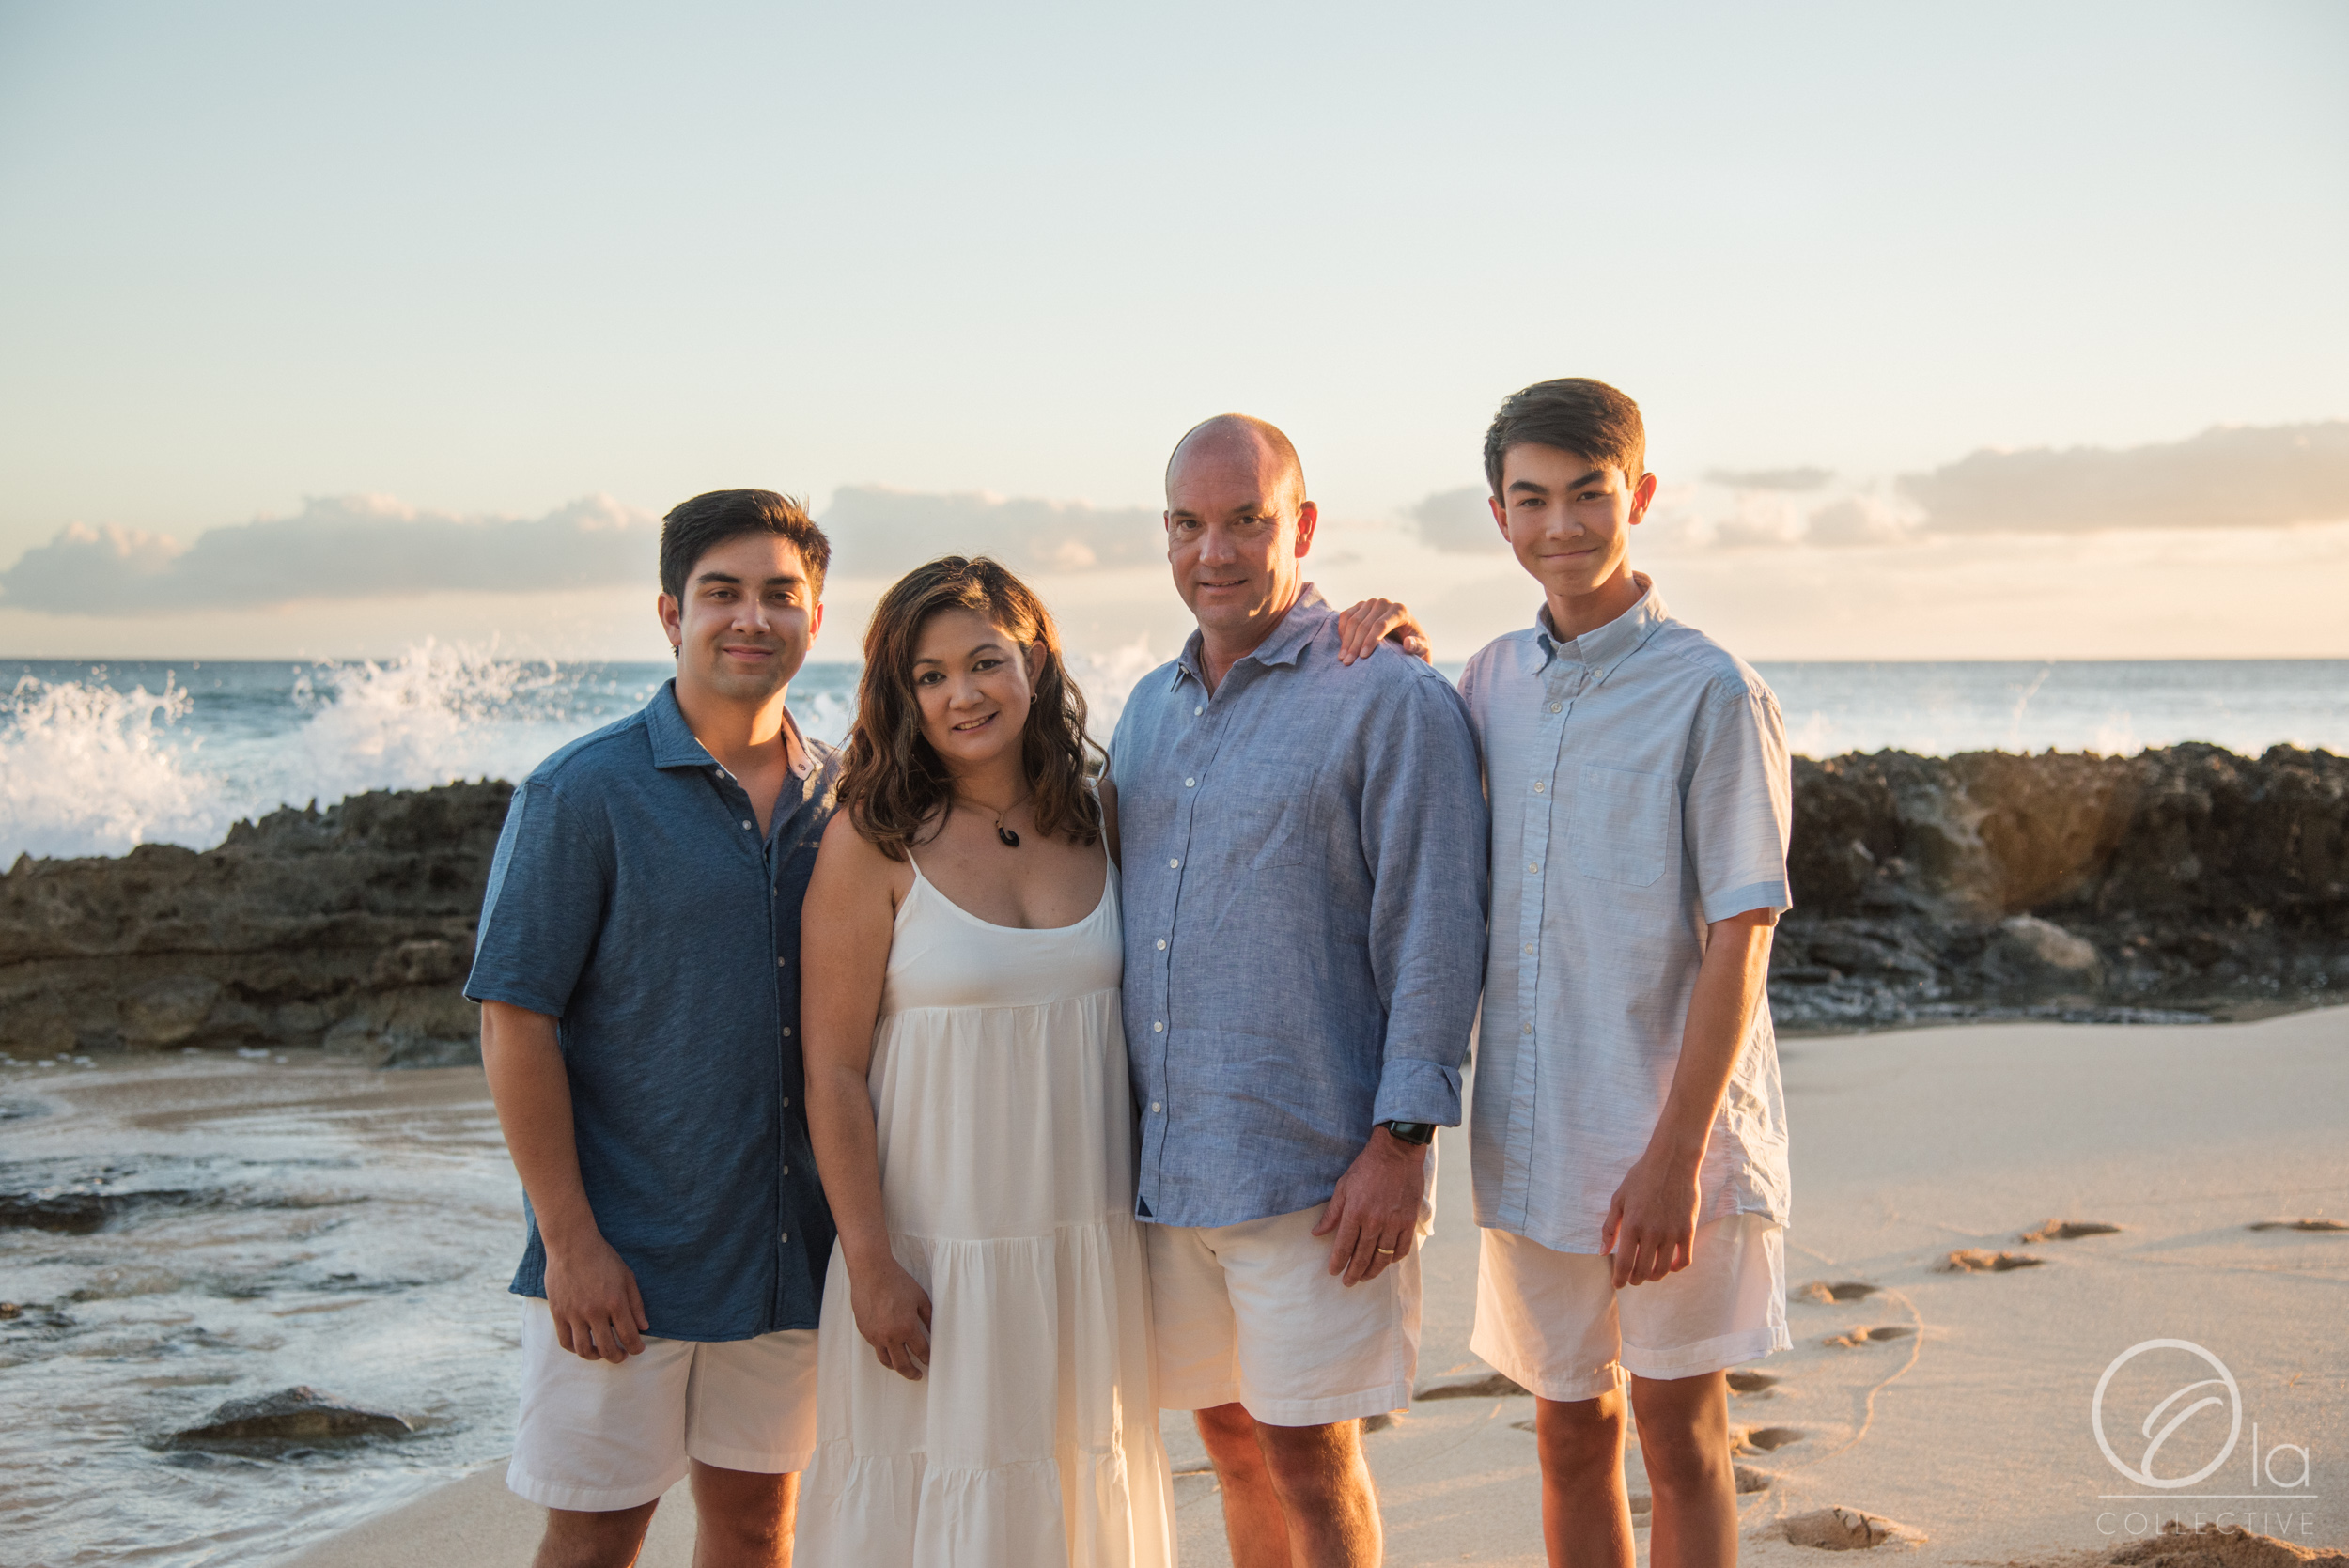 The waves crashing on the rocks behind them along with the soft golden sunset light made for a sweet family photo.